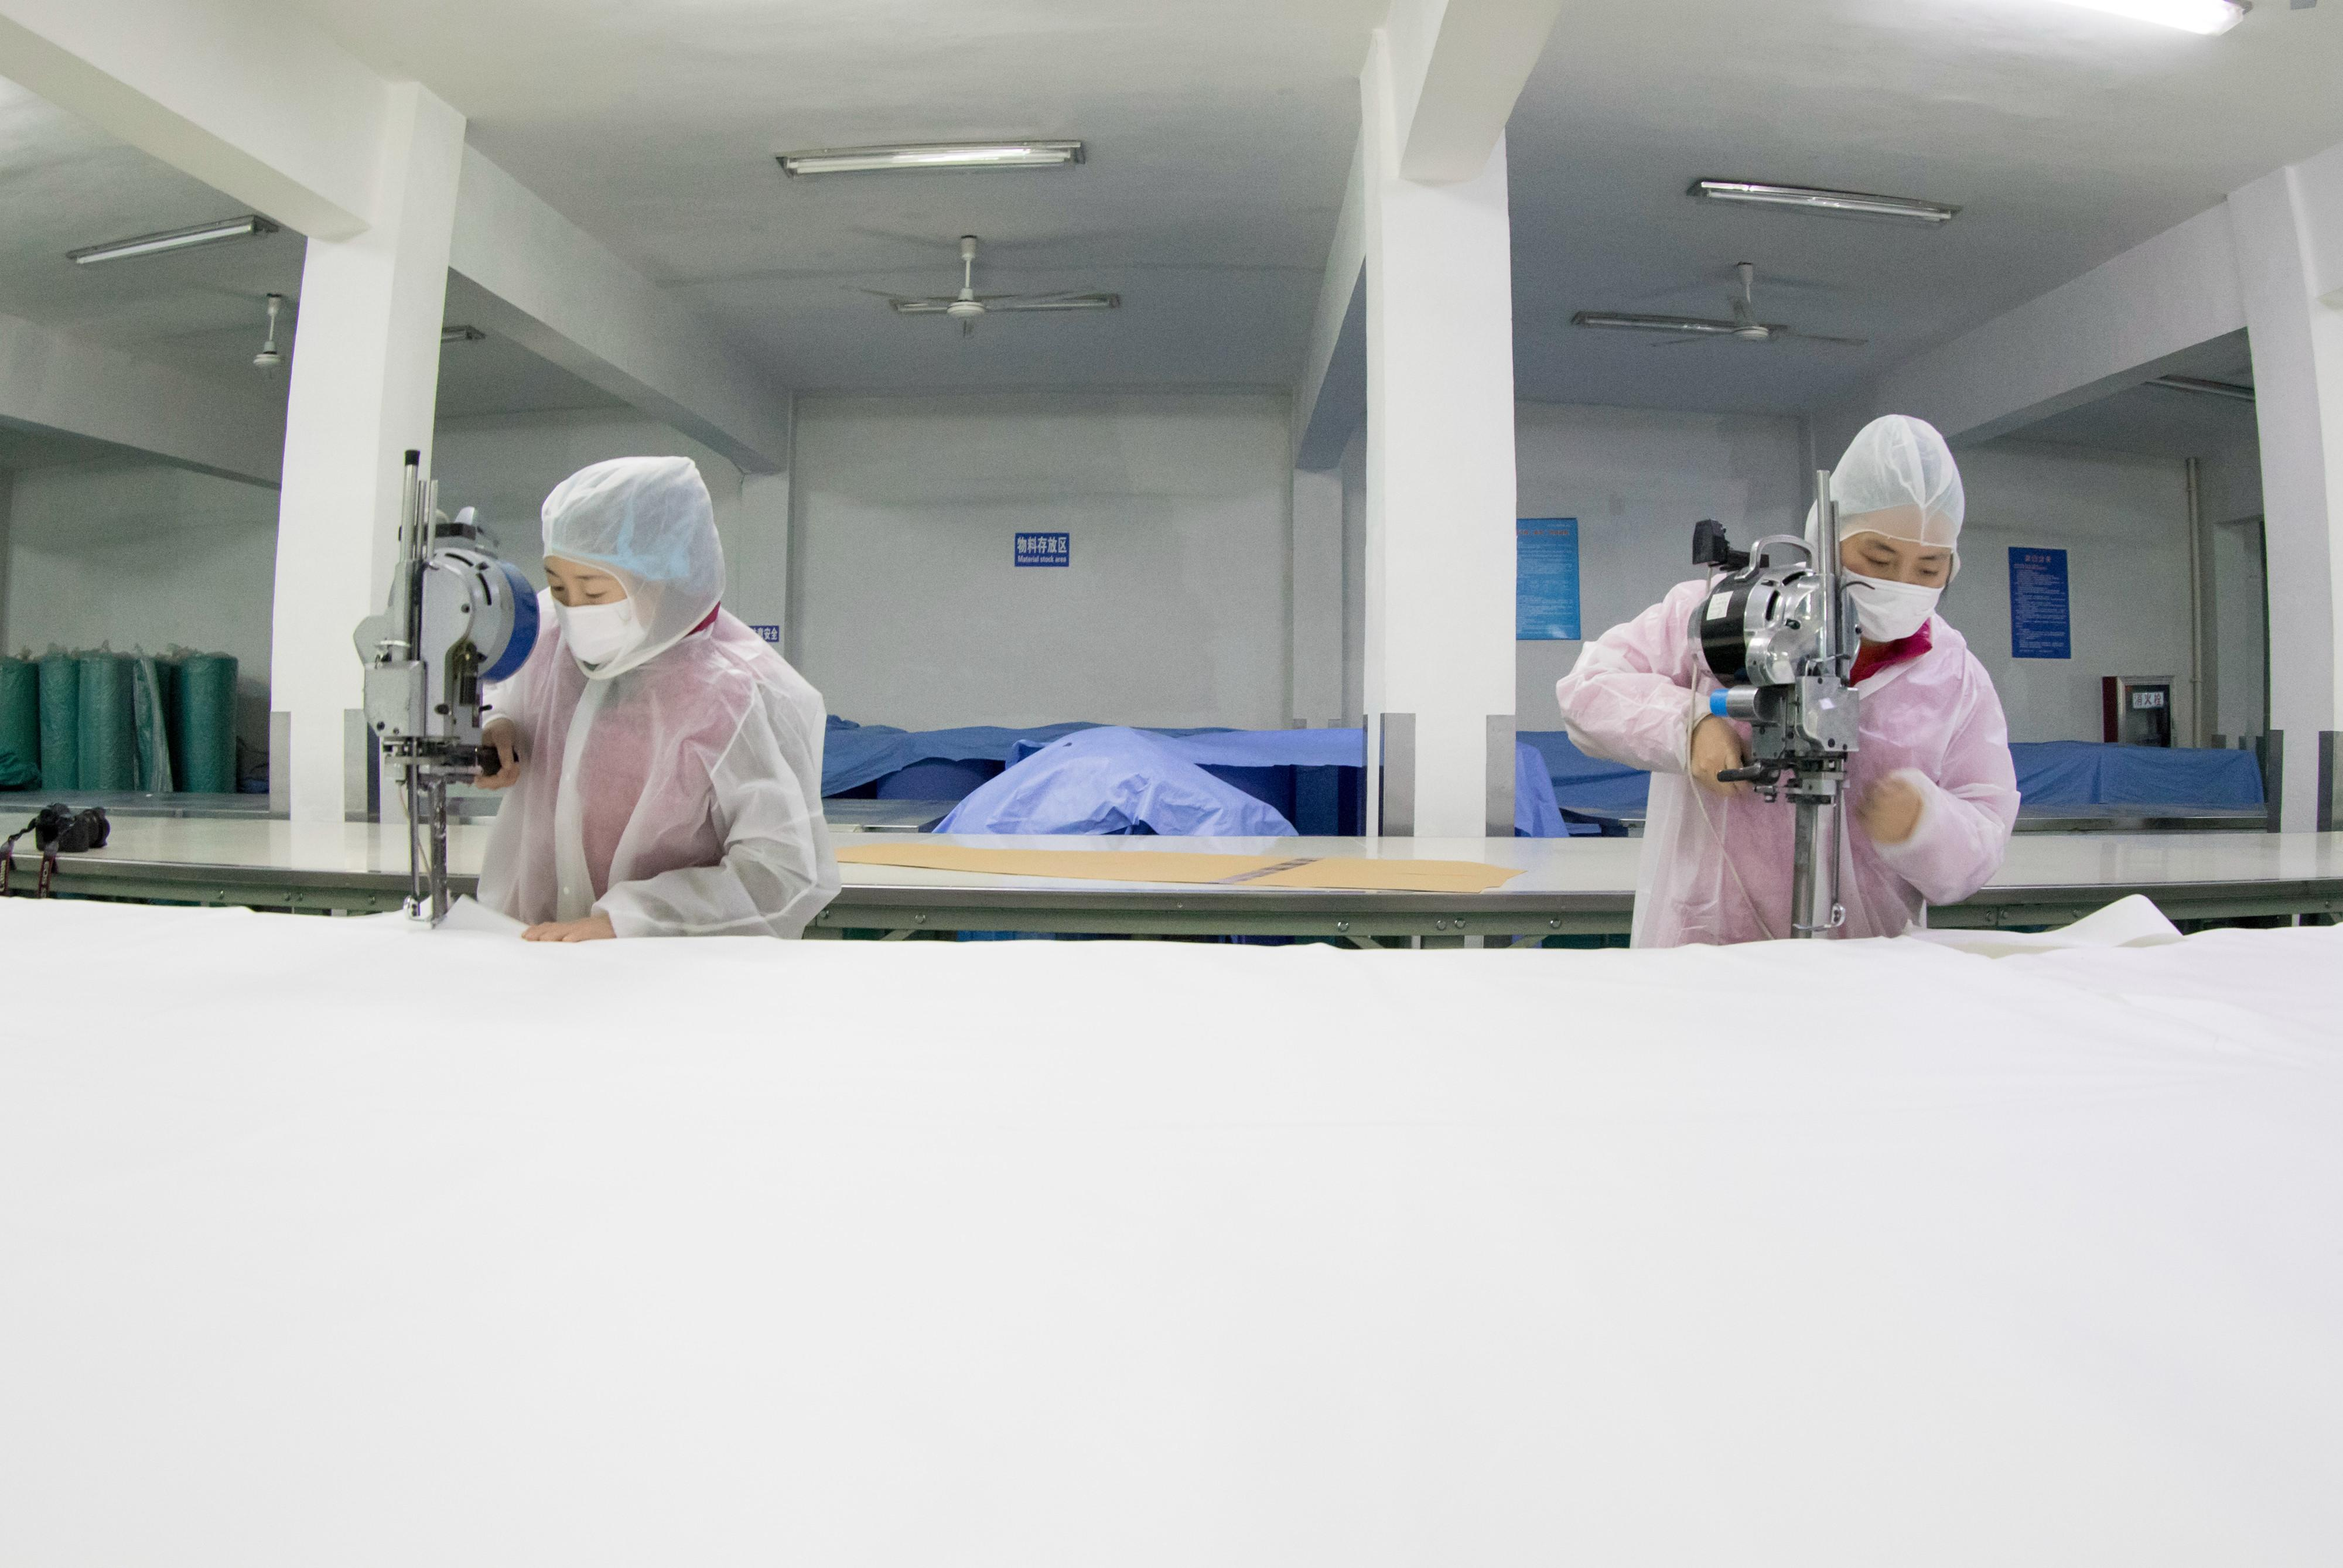 Chinese workers manufacture protective clothing at the plant of a medical material company in Libao Town, Hai'an City, east China's Jiangsu Province on February 6th, 2020. (Photo by Zhai Huiyong / Costfoto/Sipa USA)